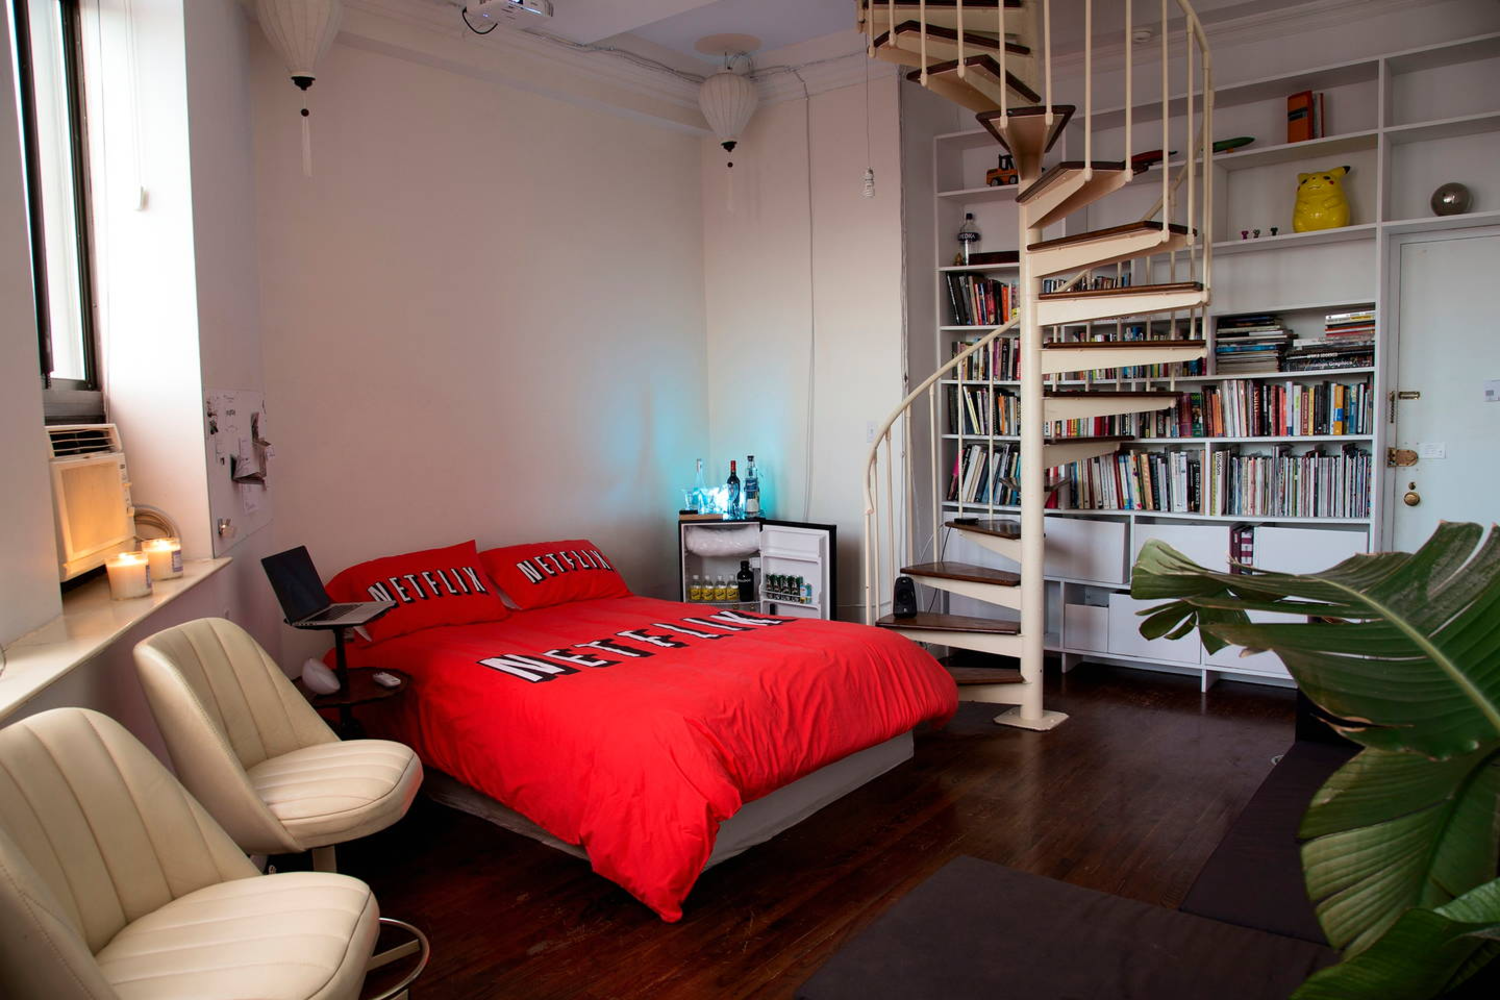 Netflix & Chill Room on Airbnb